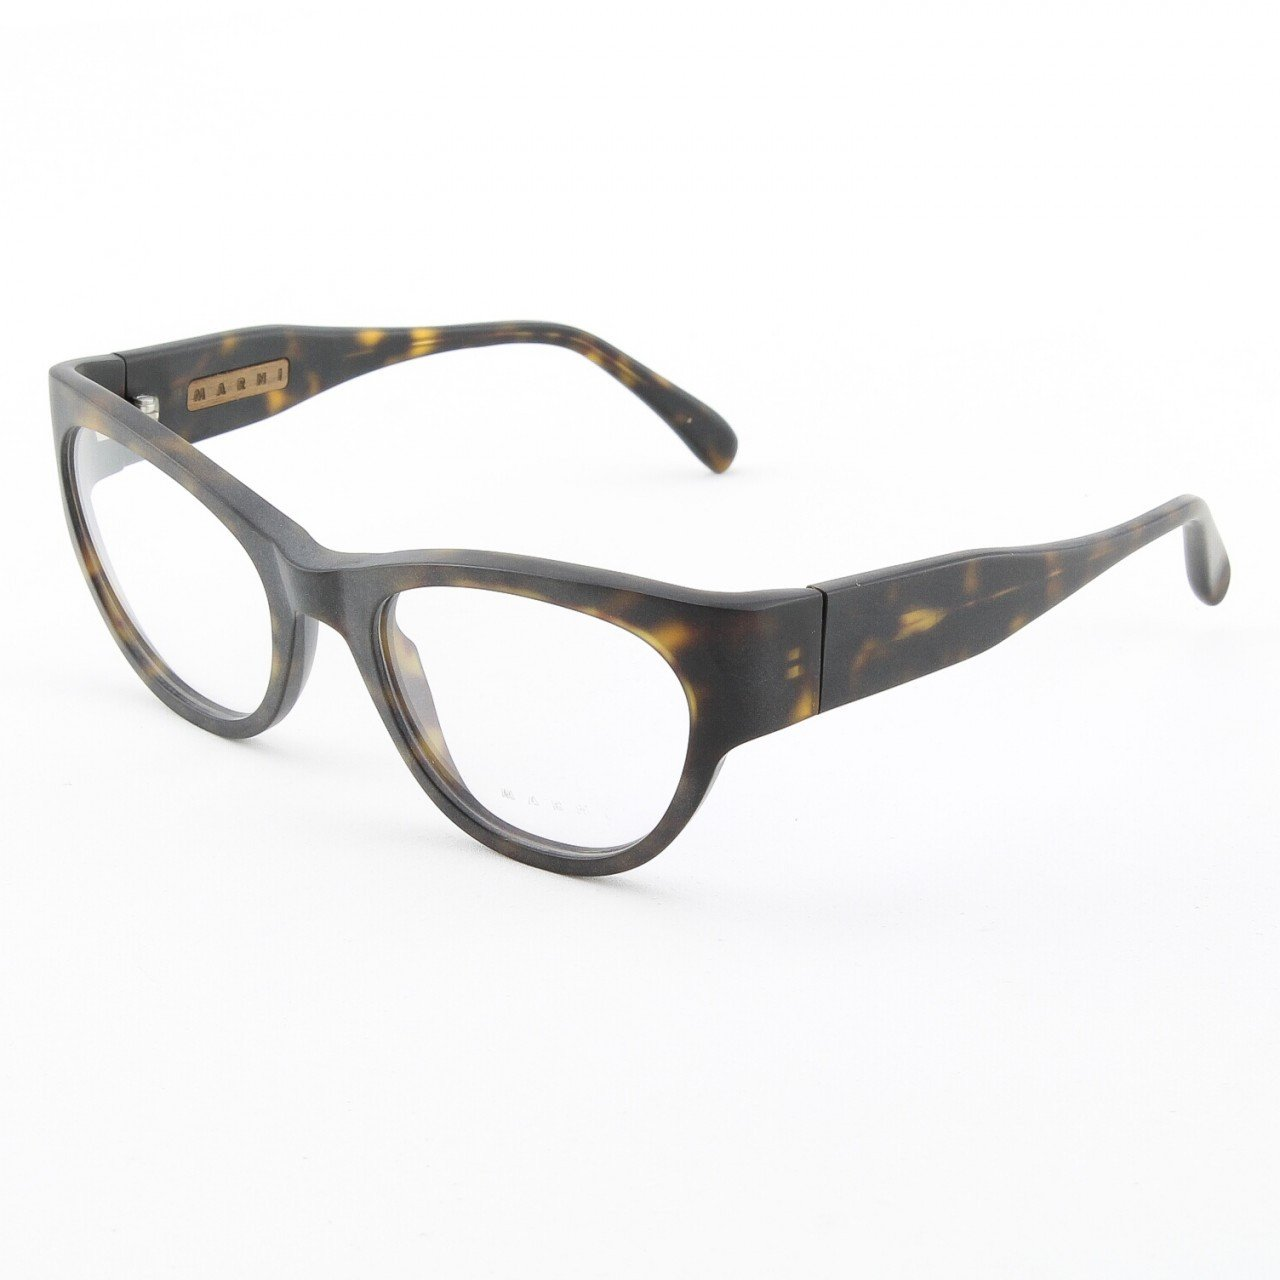 Marni MA683S Eyeglasses Col. 08 Black Tortoise Matte with Clear Lenses